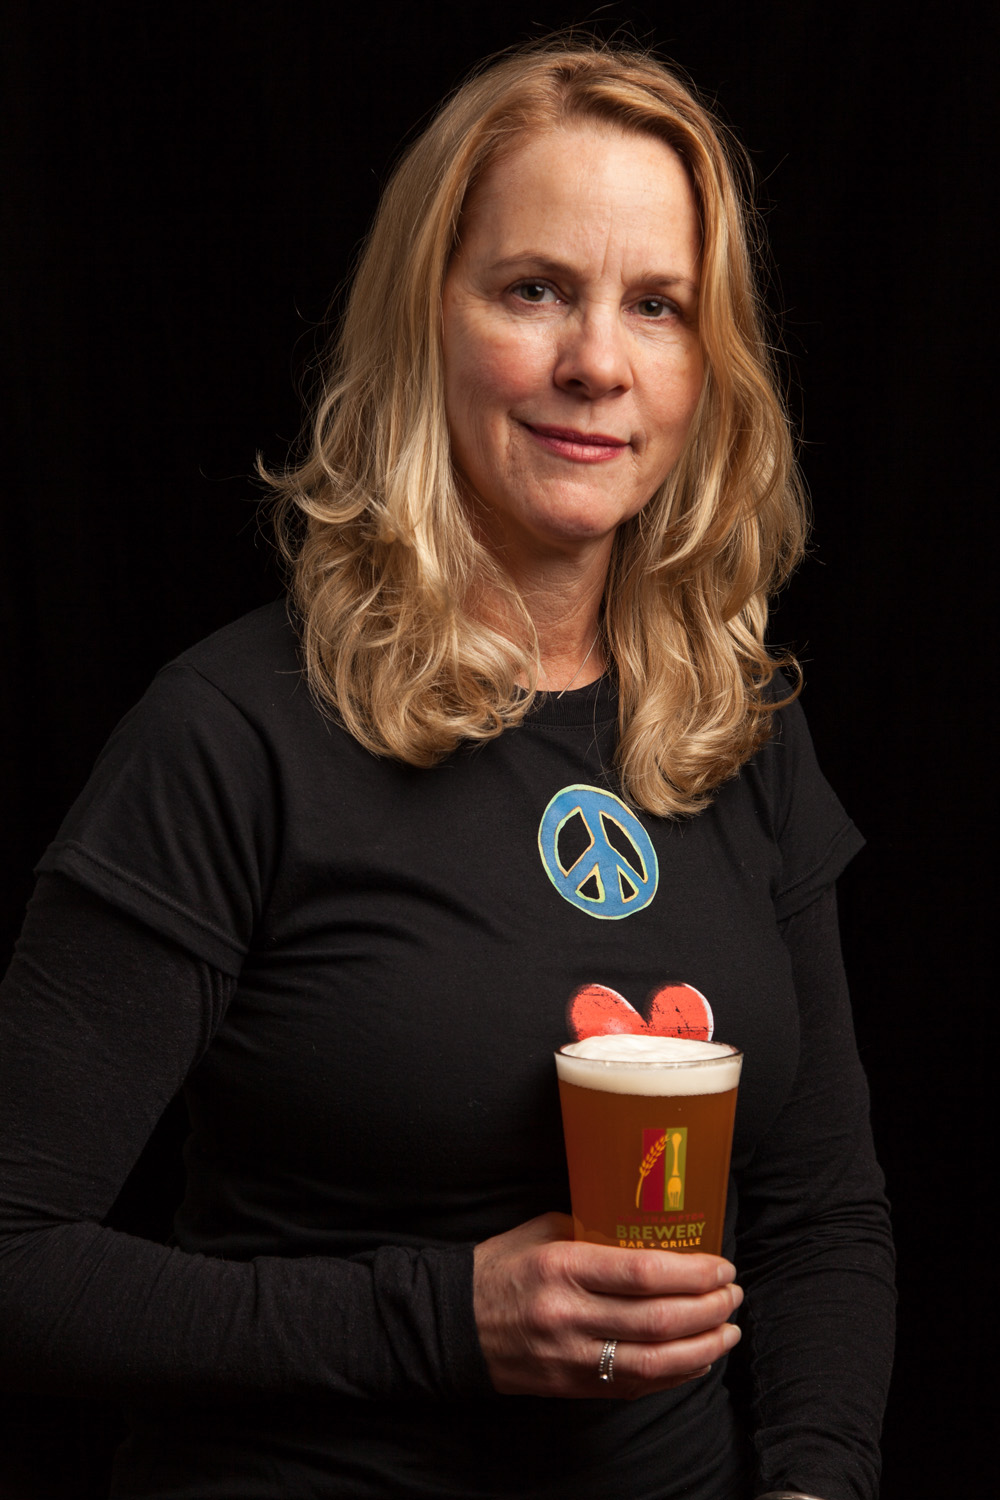 Janet Egelston, Owner of Northampton Brewery, Northampton, MA Established in 1987